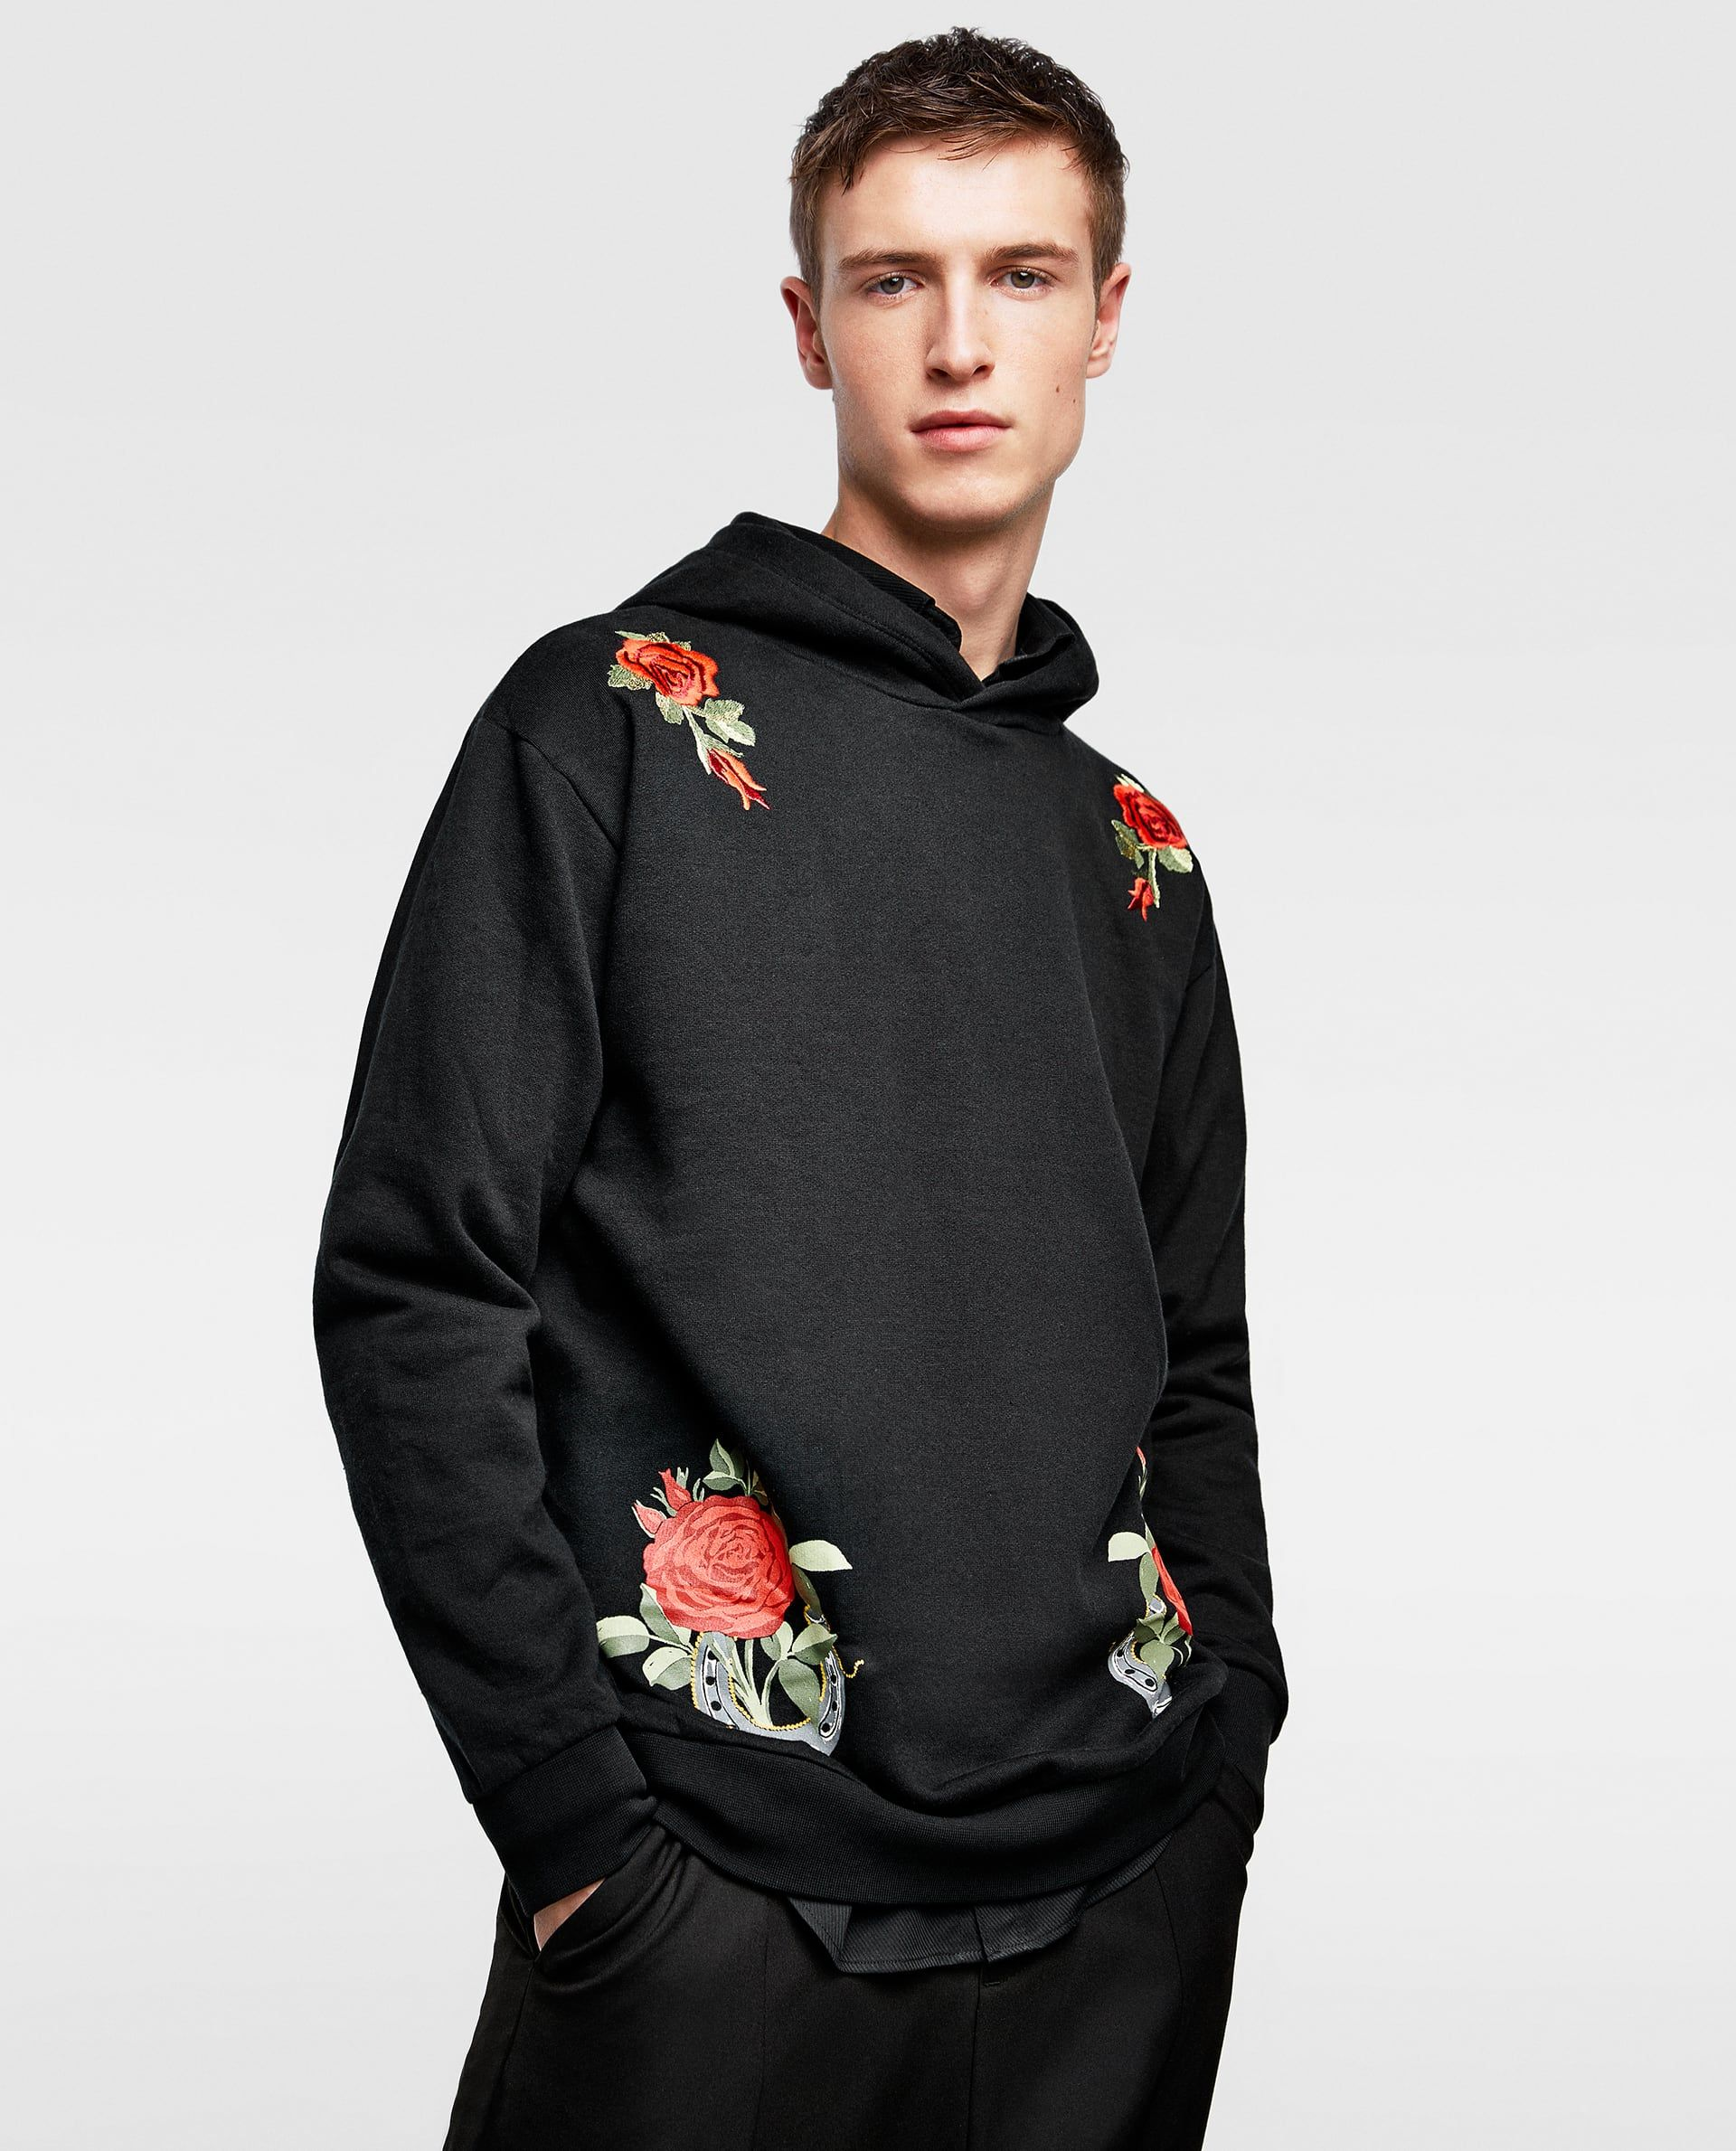 3e4a90079f Men's Special Price Clothing   New Collection Online   ZARA India ...